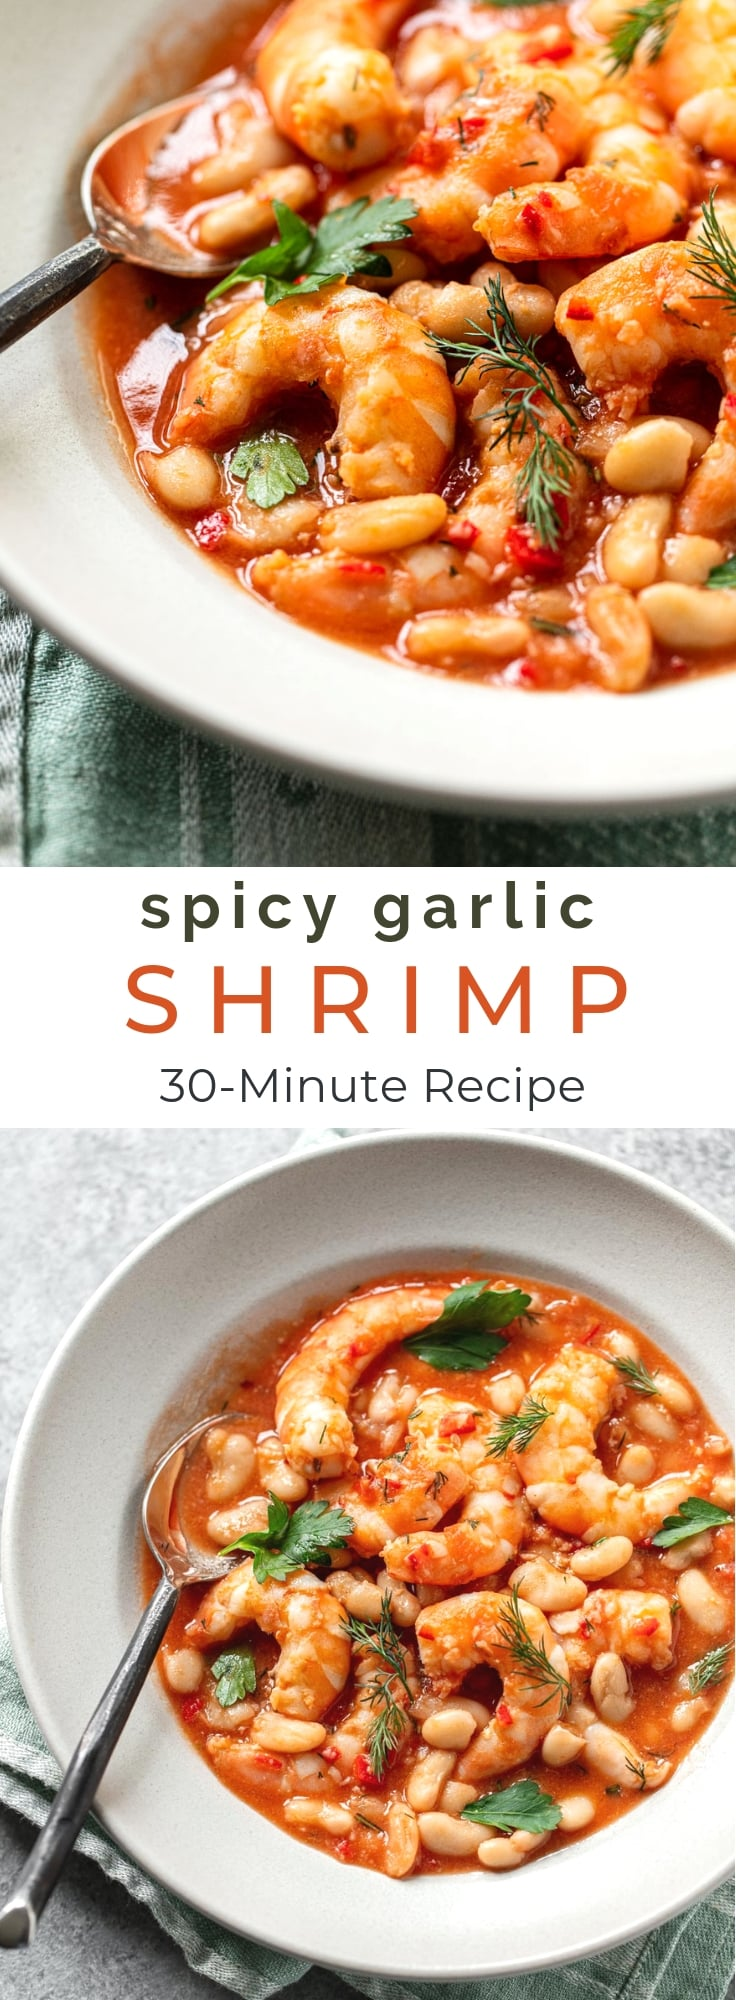 Quick, Spicy Garlic Shrimp with Rosemary Cannellini Beans